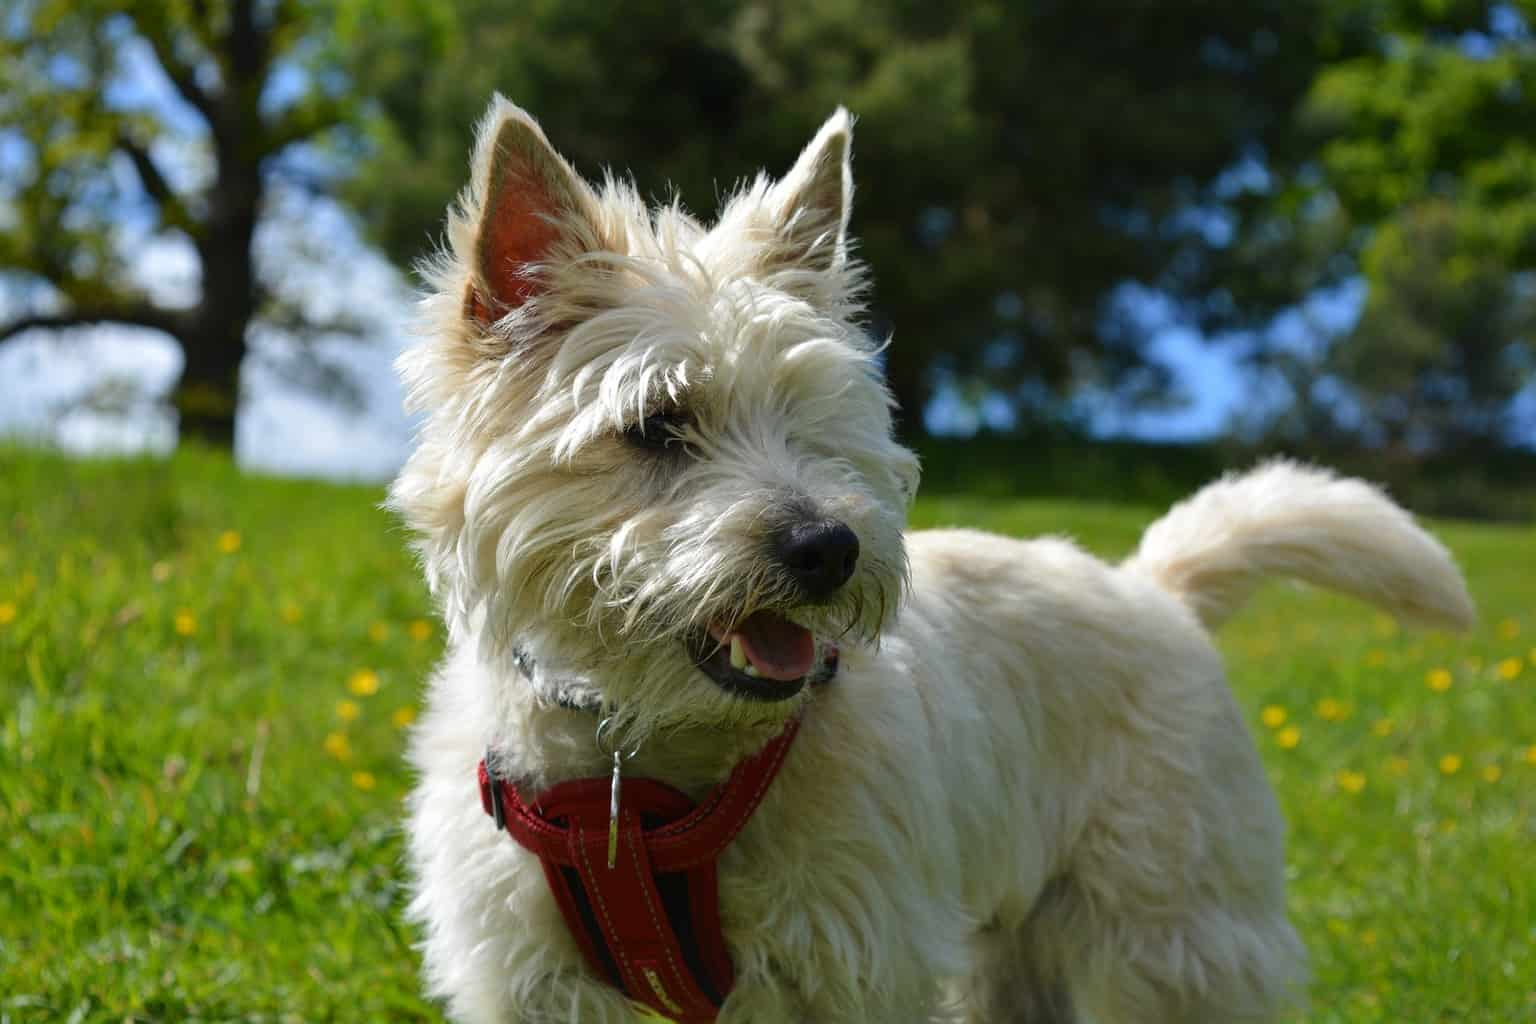 Cairn Terrier in need of grooming